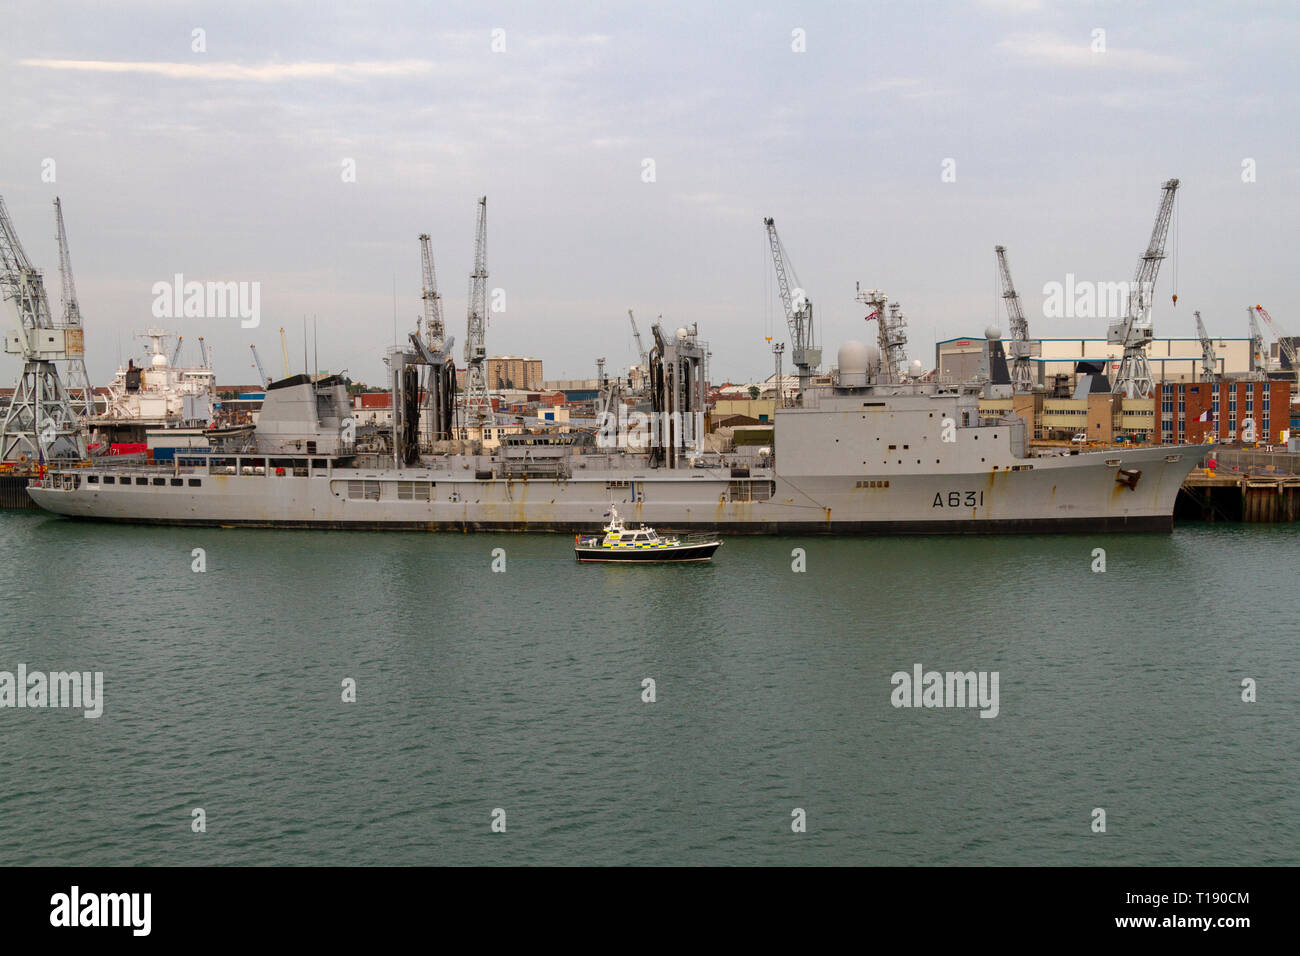 The Somme (A631) a French Durance class command and replenishment ship moored in the Royal Navy Dockyard, Portsmouth, UK. - Stock Image